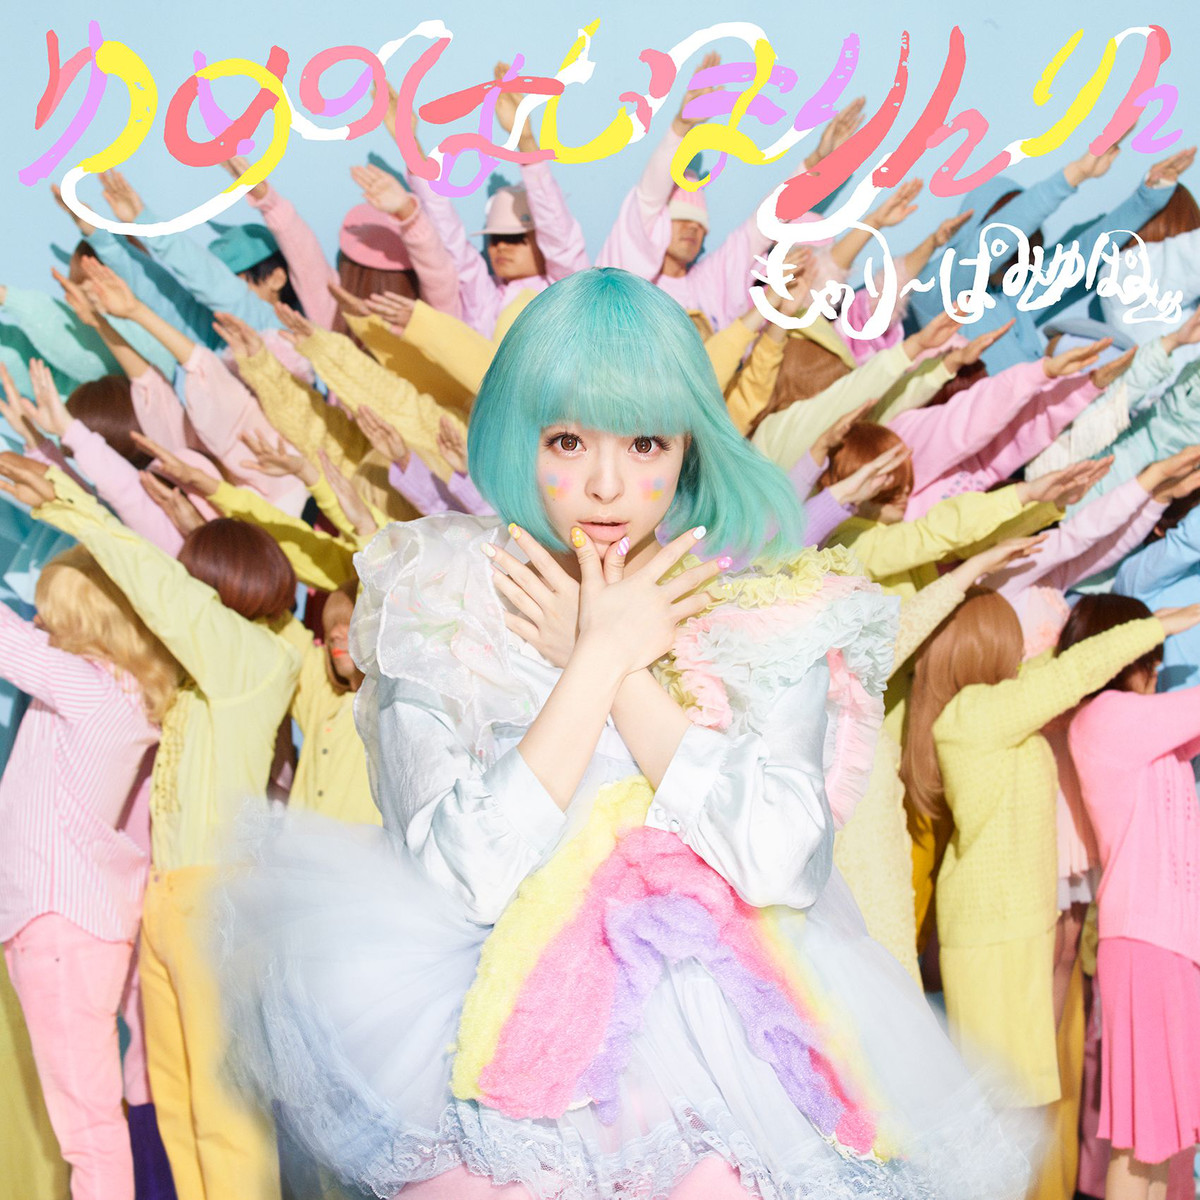 u15.info junior idol ayu Kyary Pamyu Pamyu (きゃりーぱみゅぱみゅ) - Yume No Hajimarinrin (ゆめのはじまりんりん) - Color  Coded Lyrics